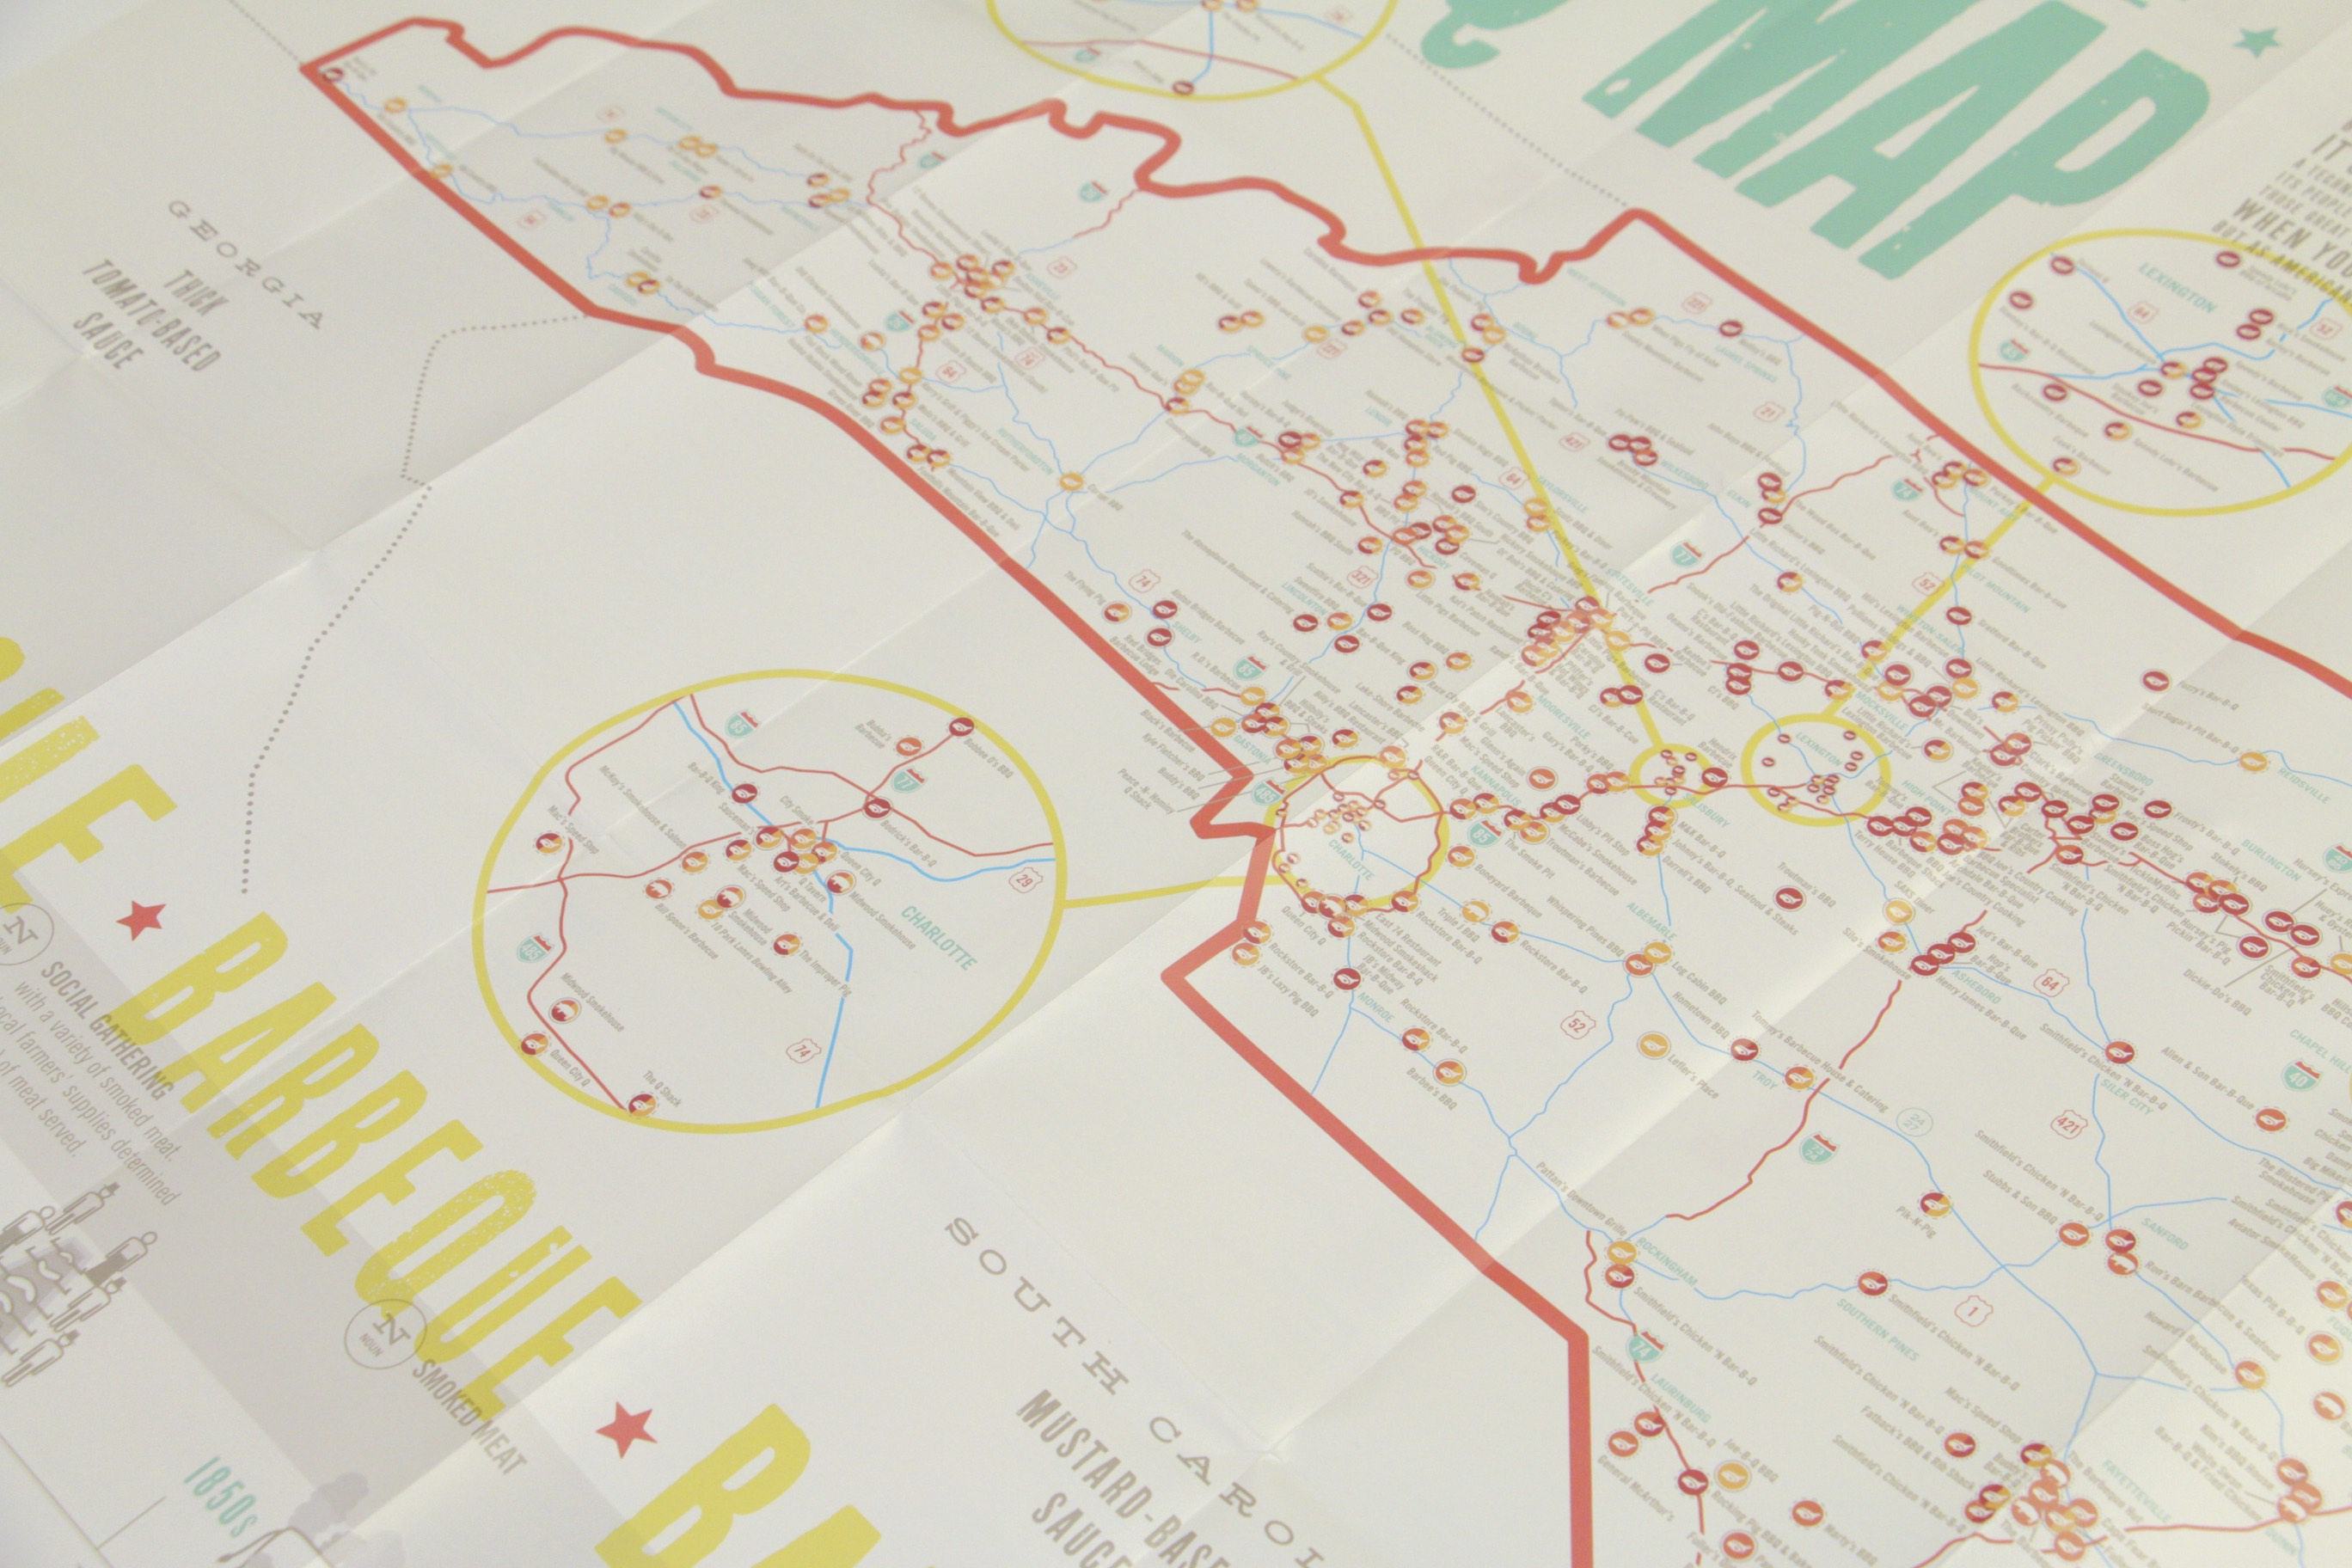 The Great Nc Bbq Map Inside Design Archives Emporium